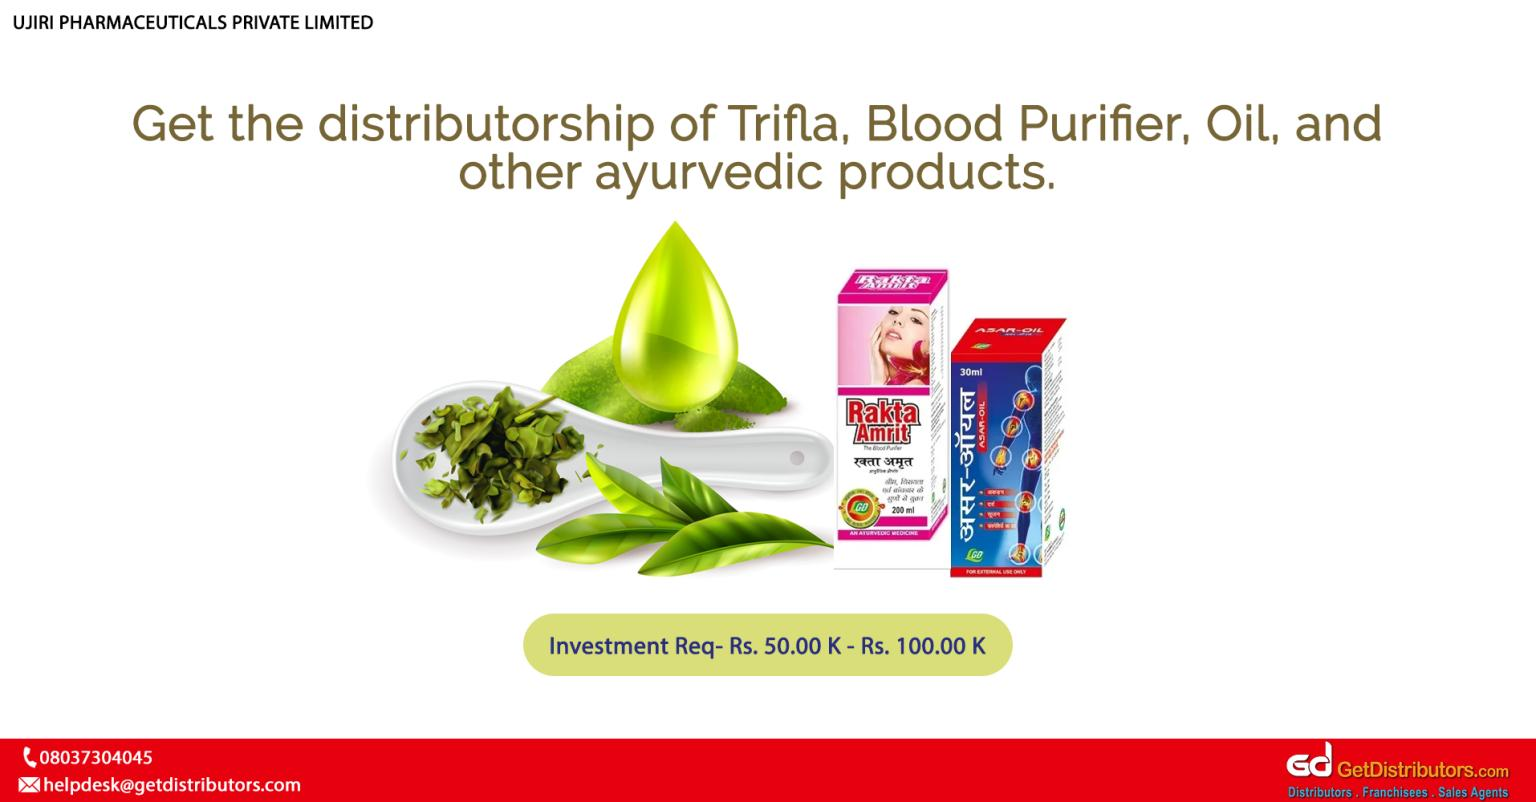 Affordable ayurvedic products with a long shelf life